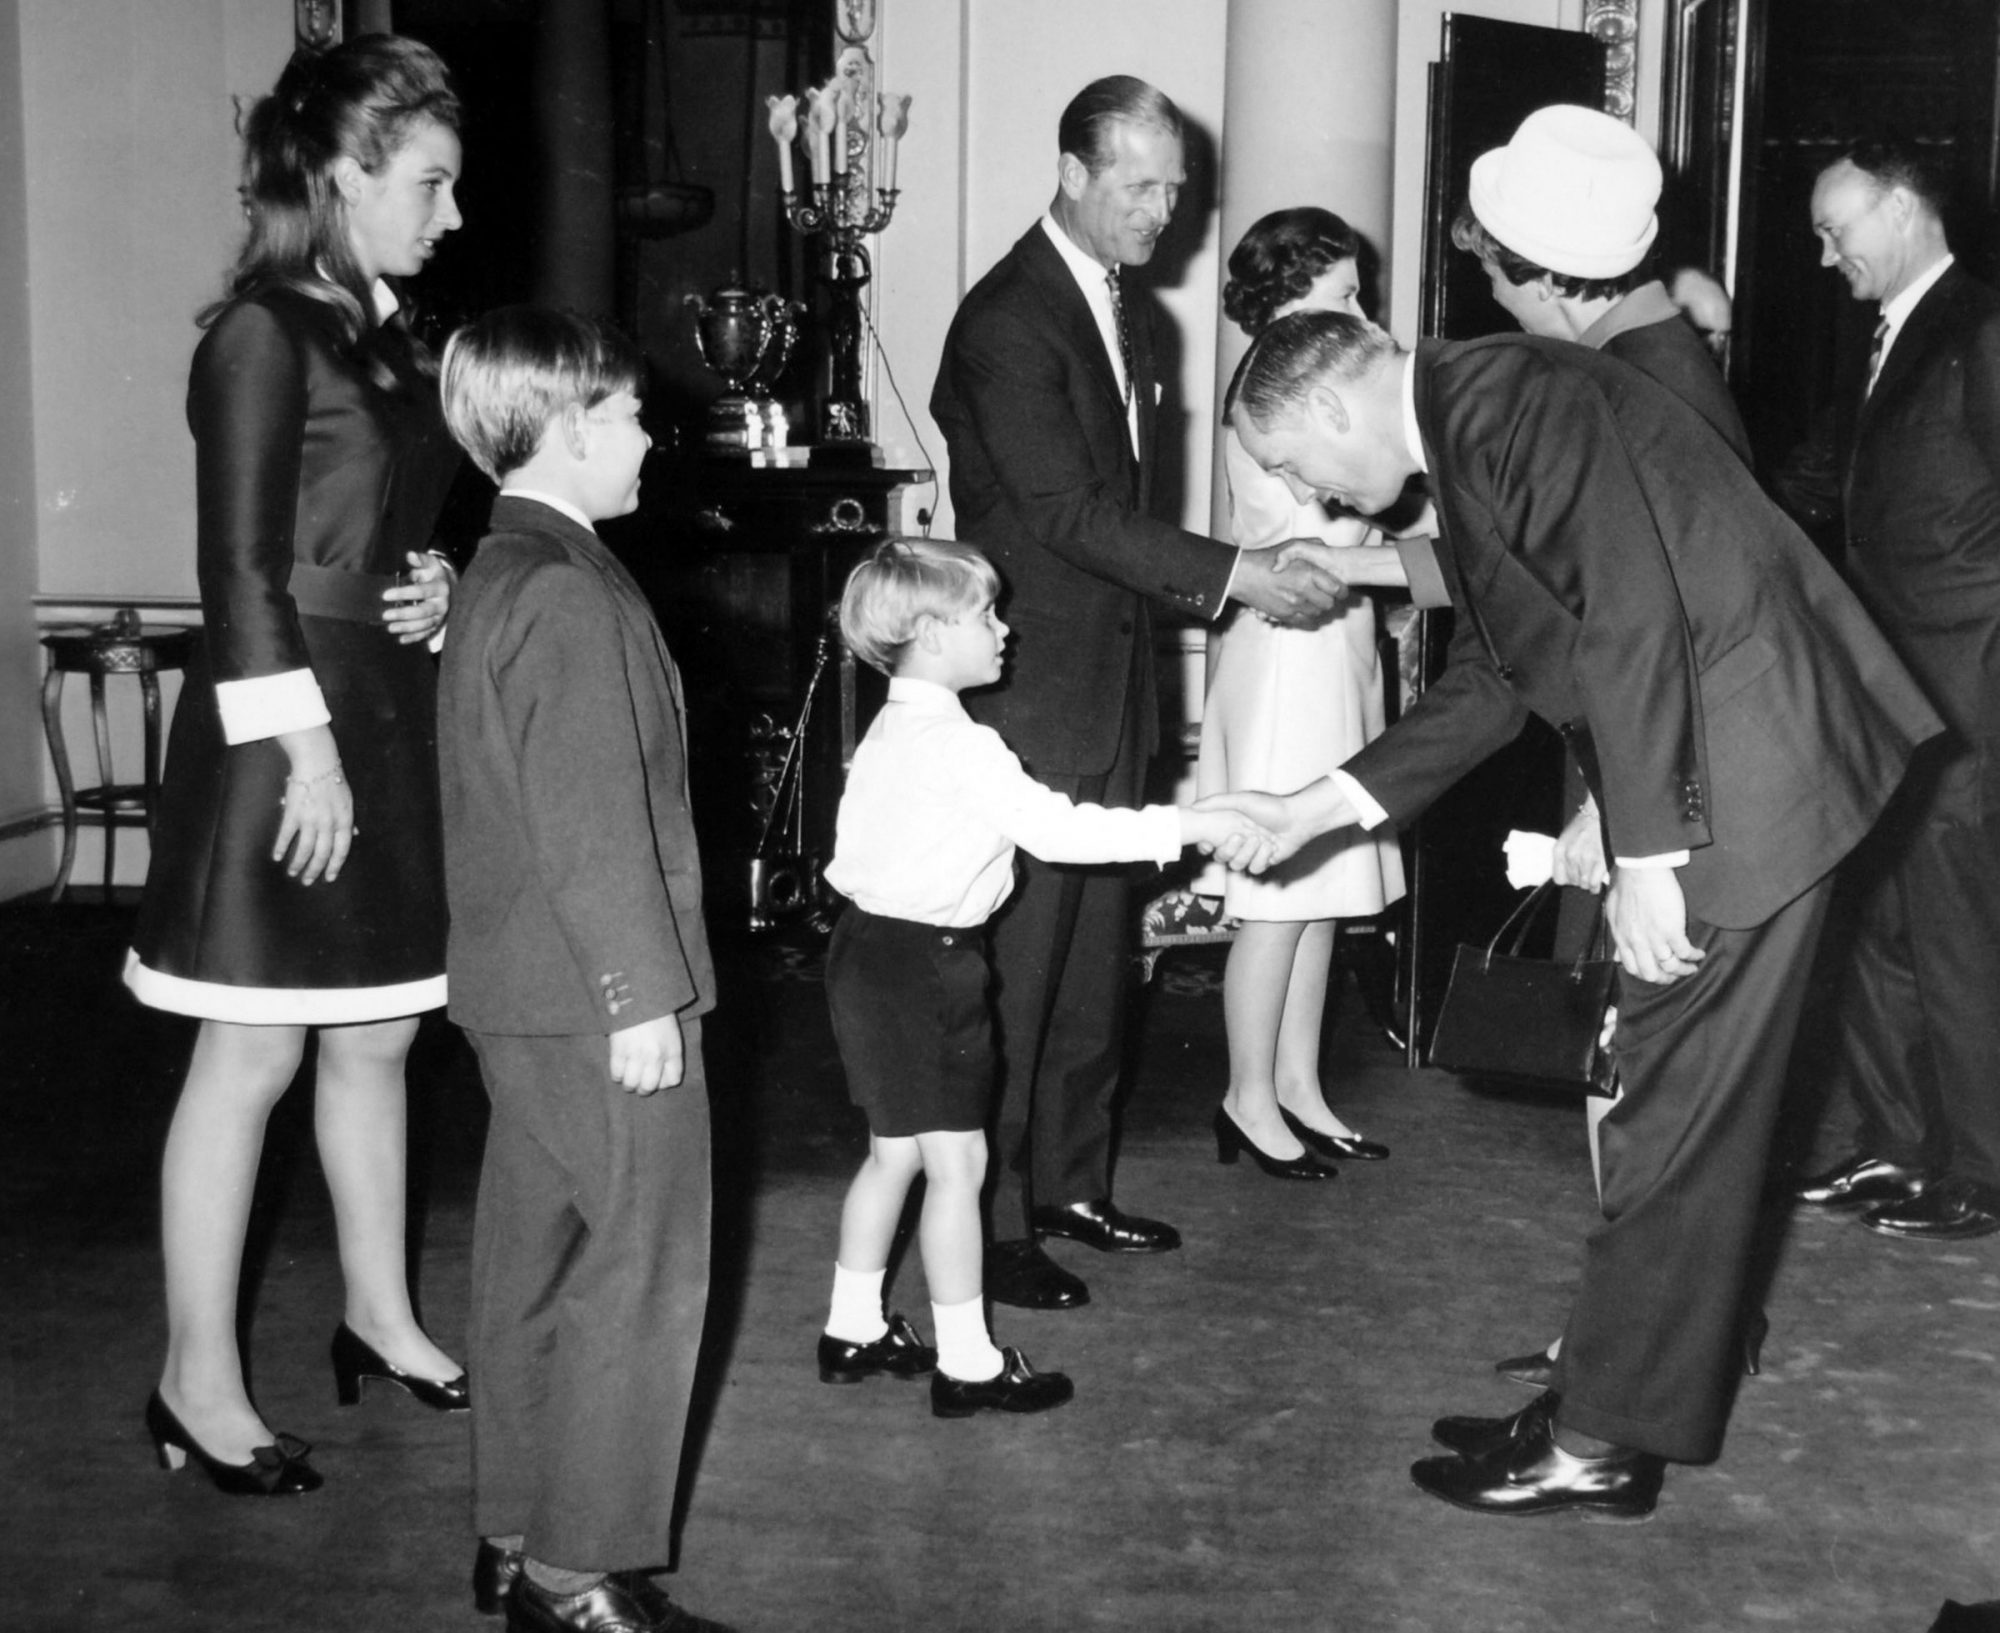 Prince Edward shaking hands with Neil Armstrong, first man to set foot on the Moon at Buckingham Palace during their triumphal world tour. Queen Elizabeth II welcomes Colonel Michael Collins, who orbited in the command module